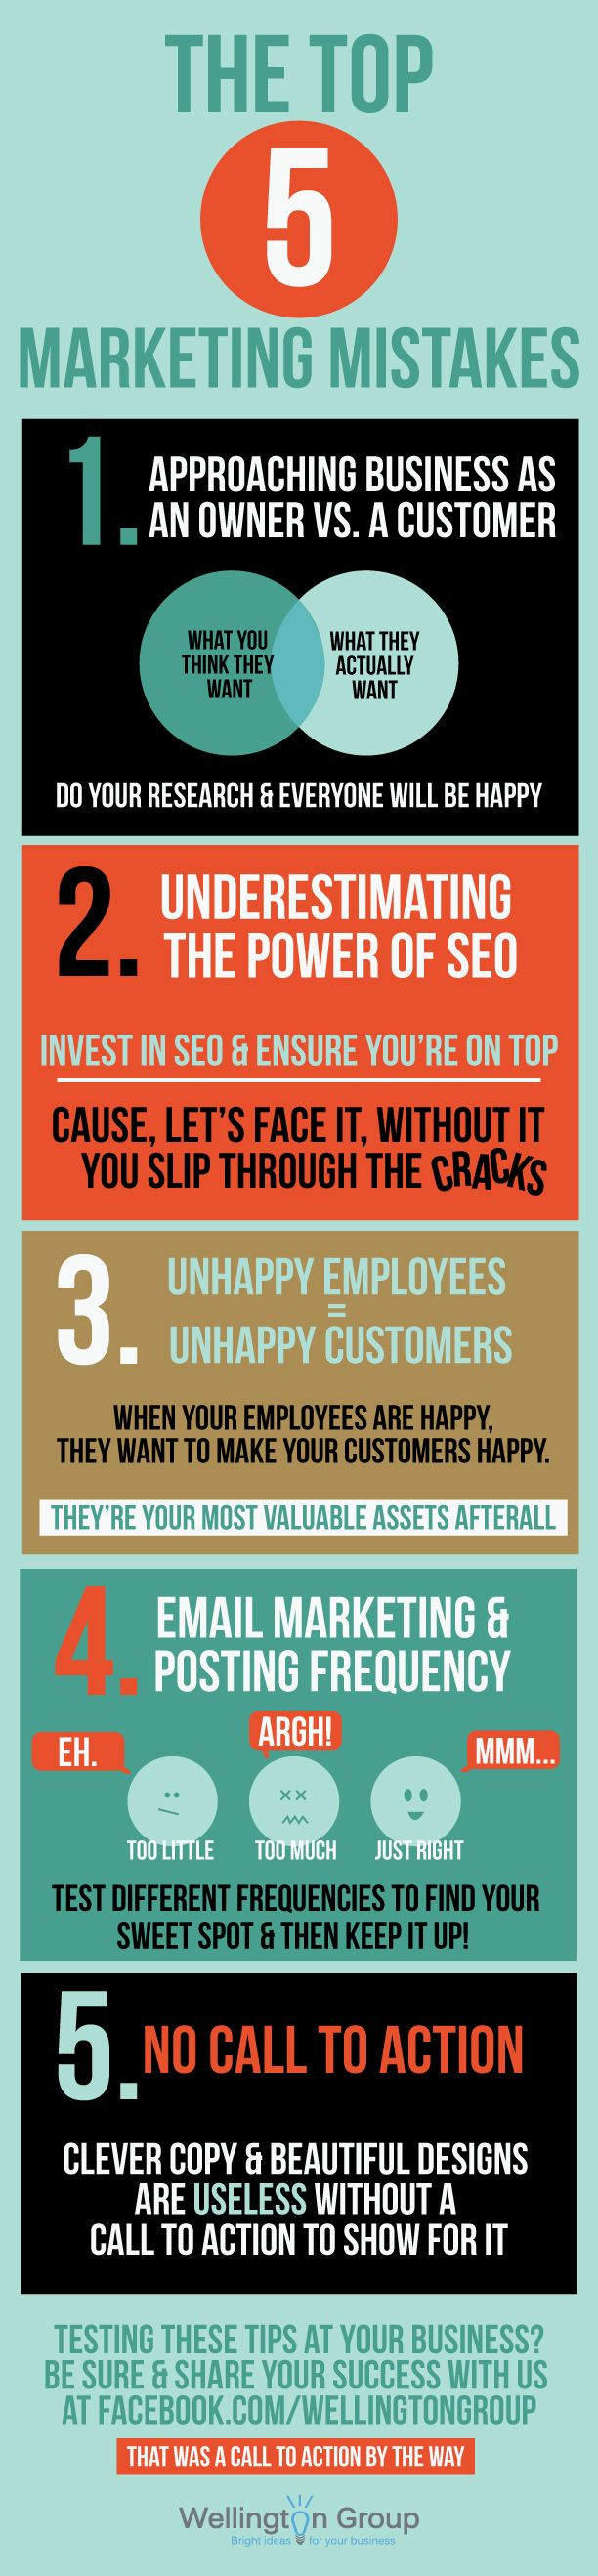 Top 5 Marketing Mistakes #Infographic